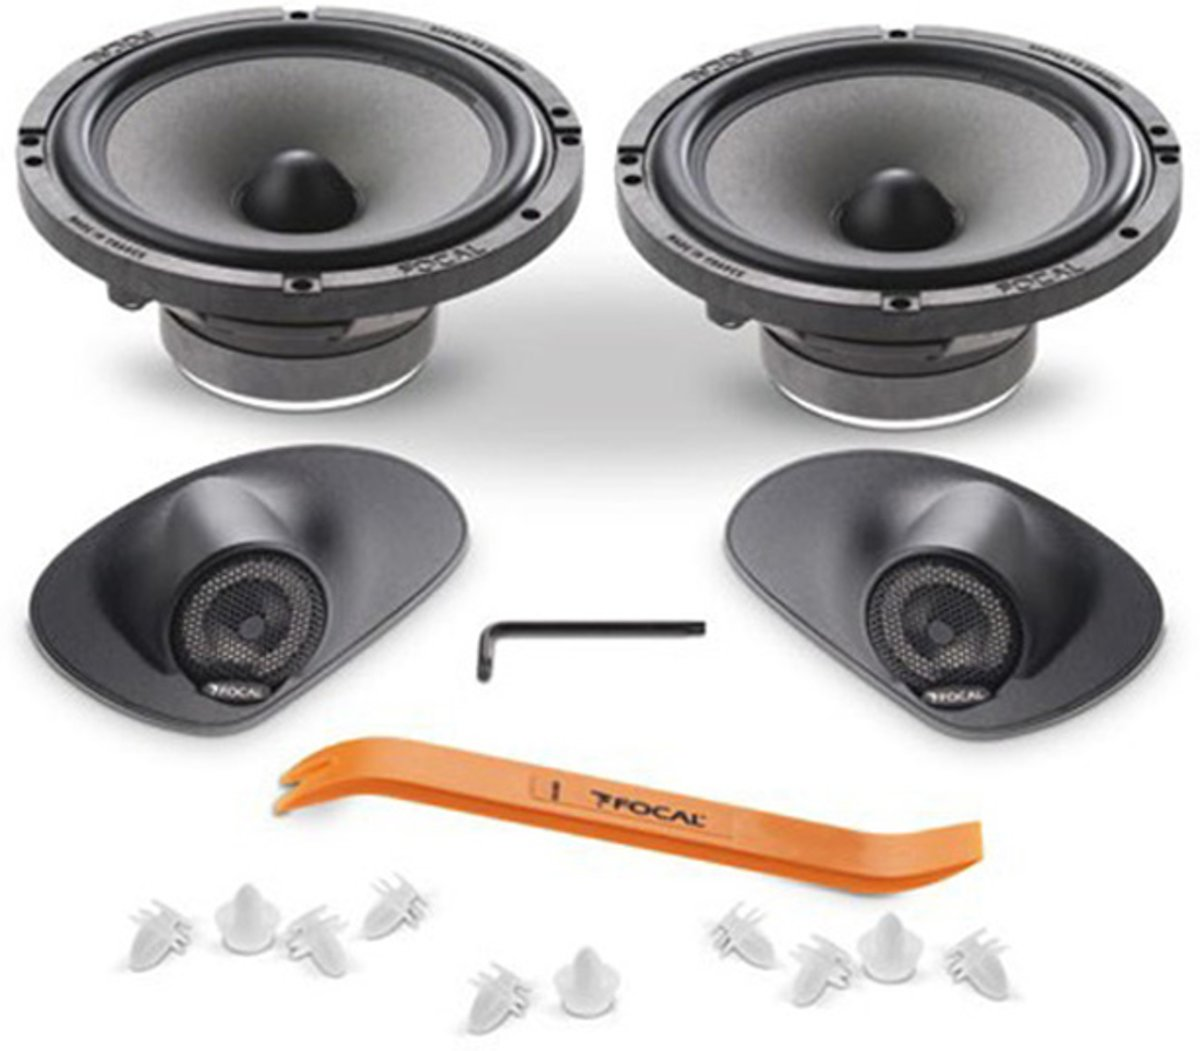 Focal IFP207 speakers Peugeot 207 boxen pasklaar